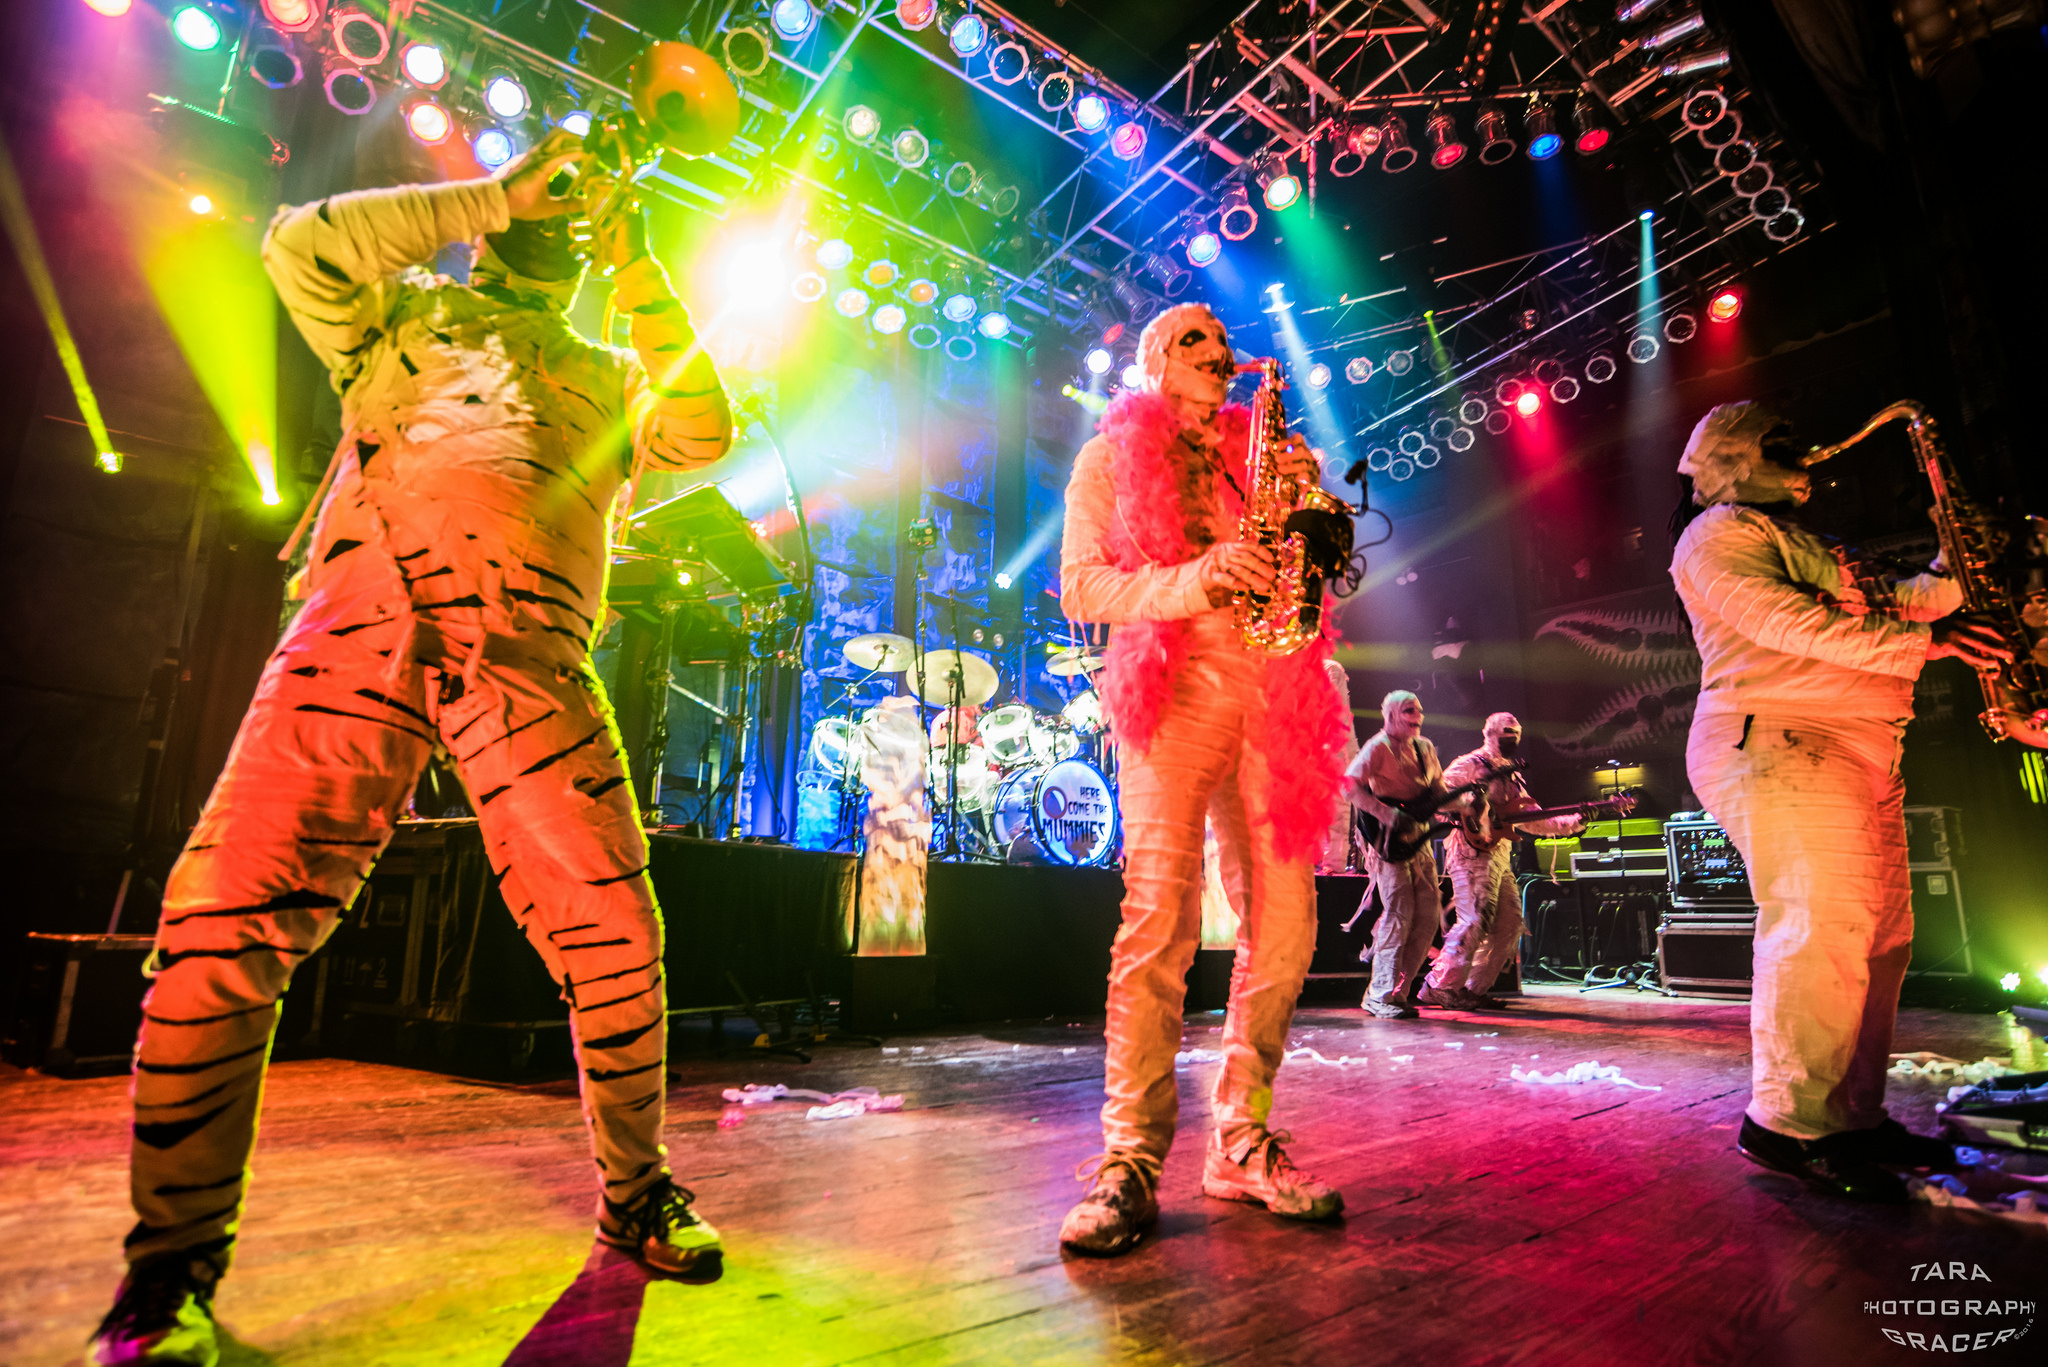 Photos | Here Come The Mummies & The North 41 @ House Of Blues 2/18/17